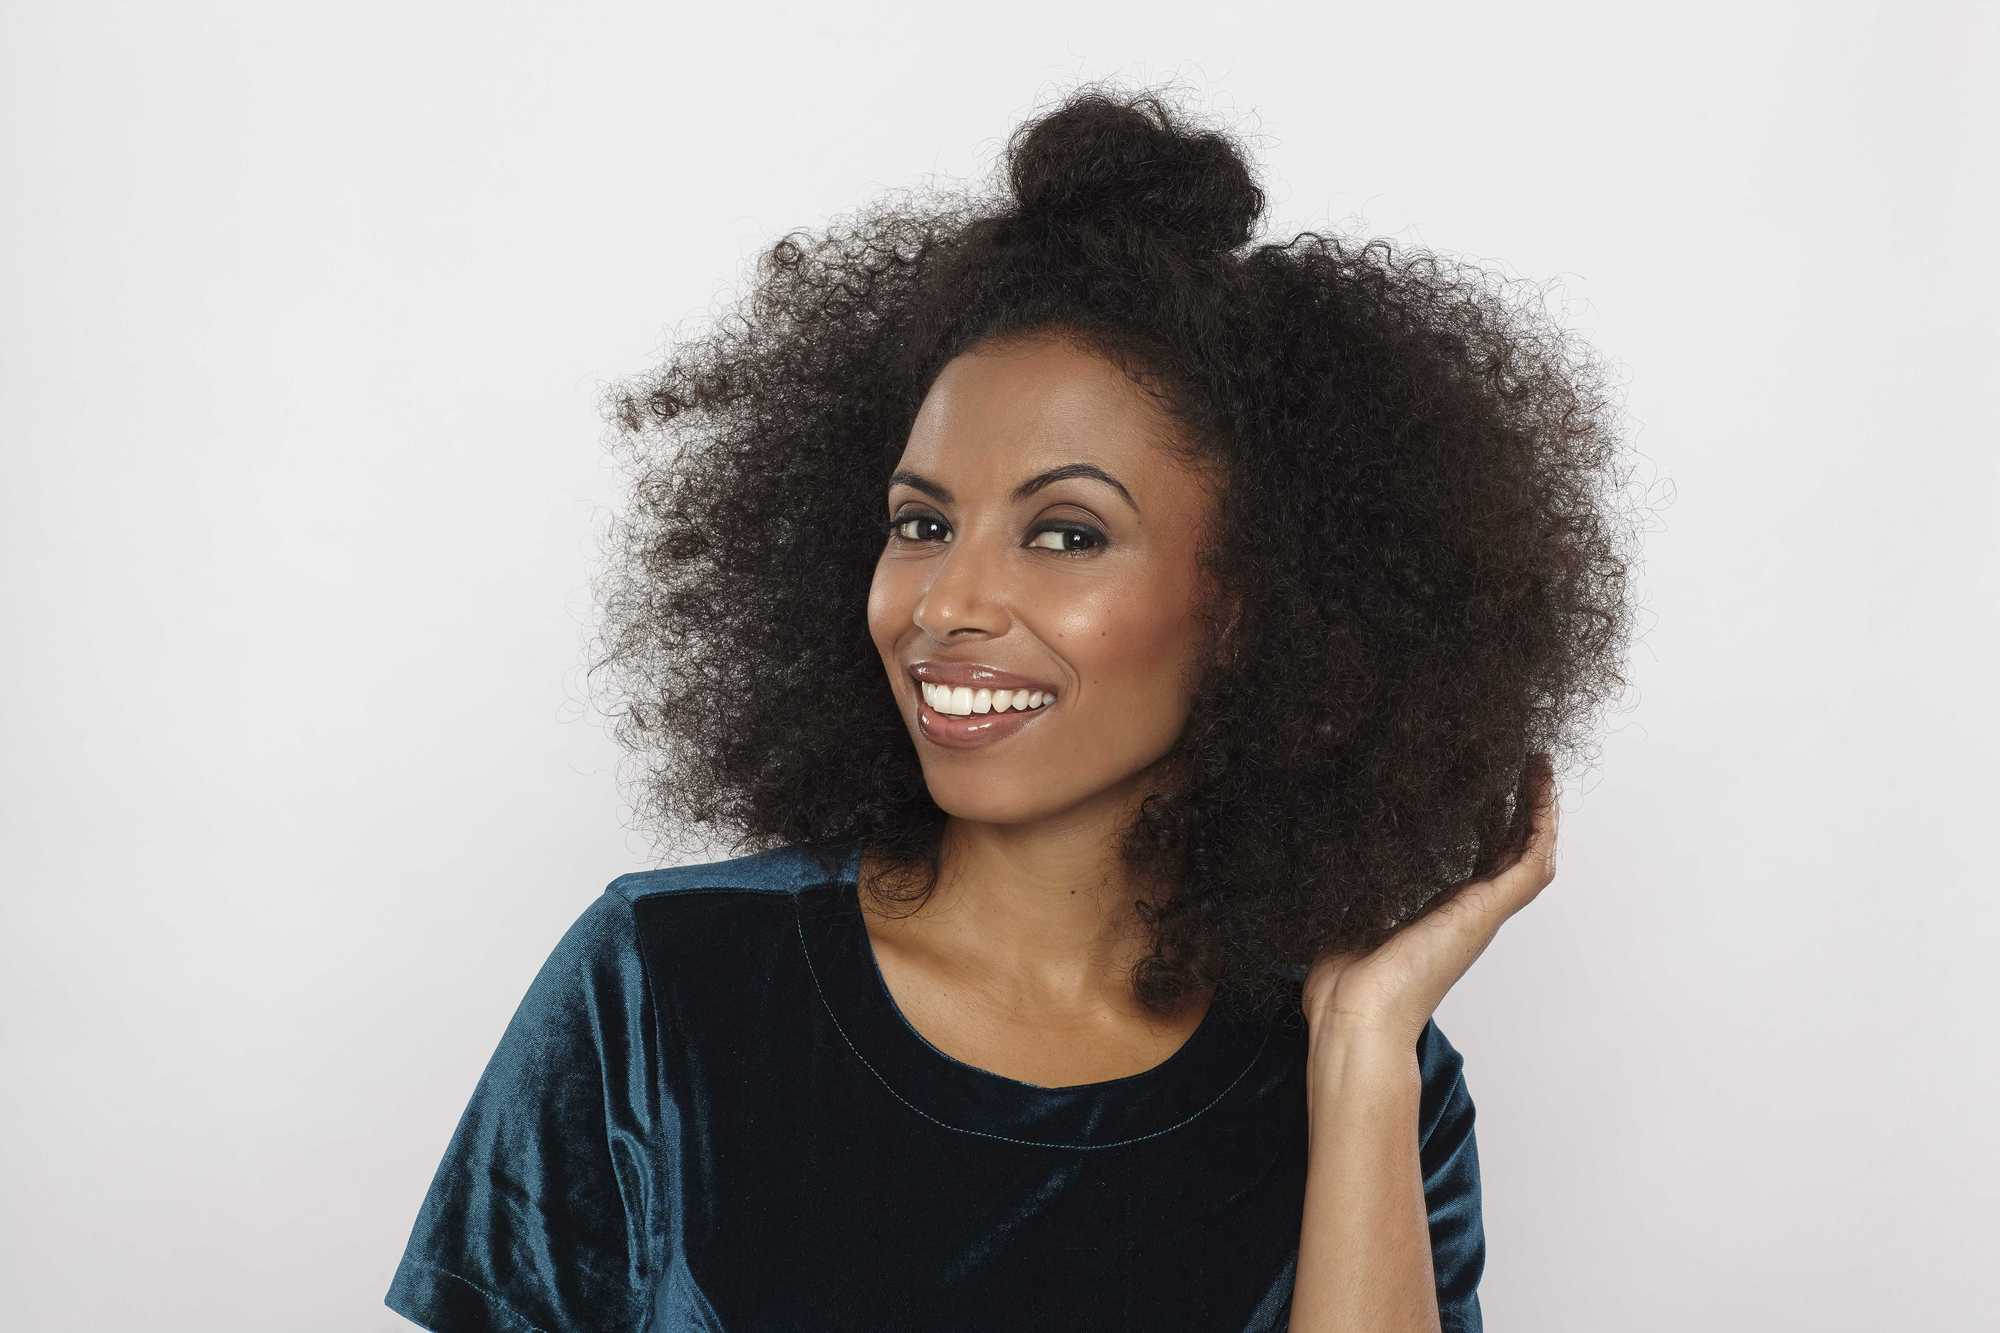 Easy natural hairstyles: Close up shot of model with natural hair styled into a half up half down bun hairstyle, wearing velvet top and posing in a studio.